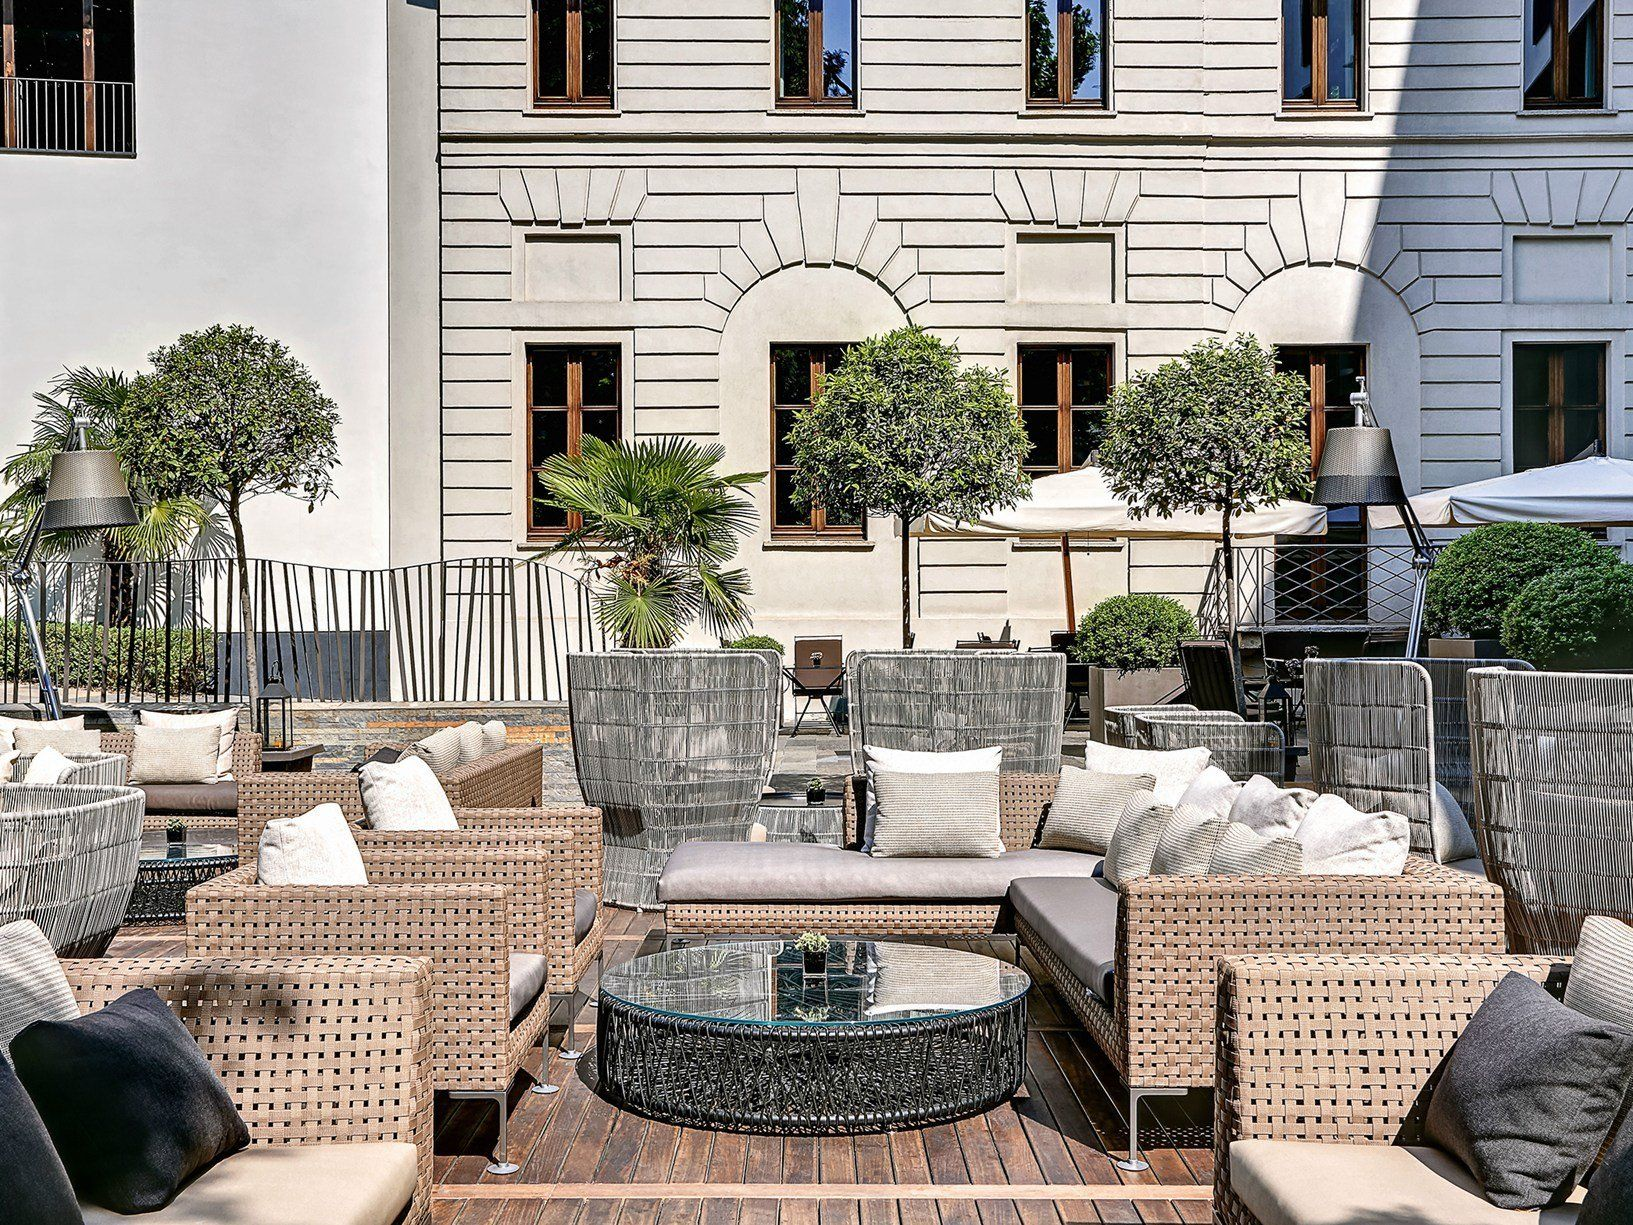 relaxing oasis in the heart of Milan